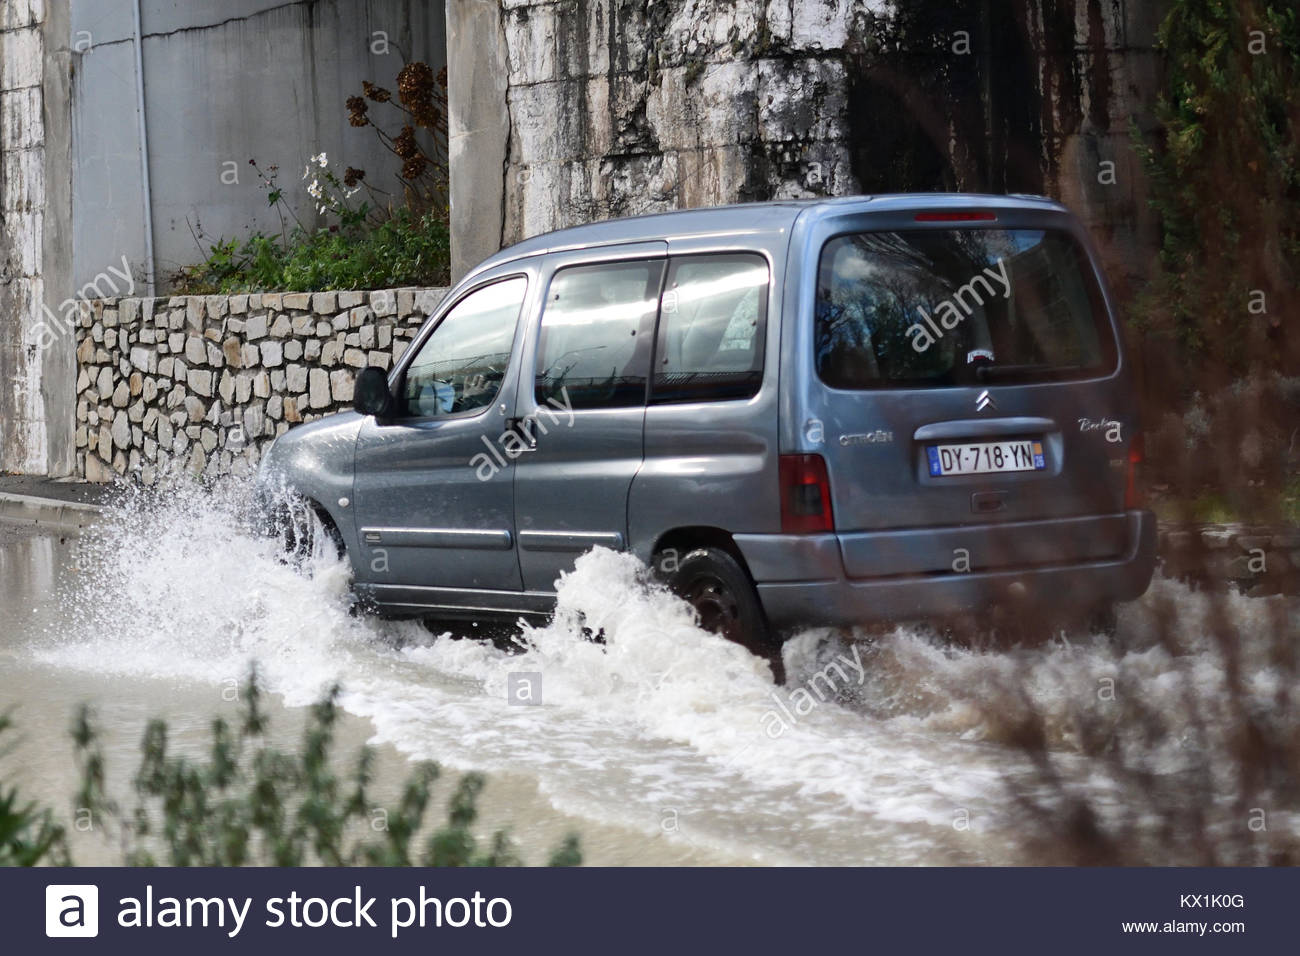 Véronne France 6 January 2018 The photo shows a car driving through floodwaters in Ardèche at Voulte-Sur - Stock Image